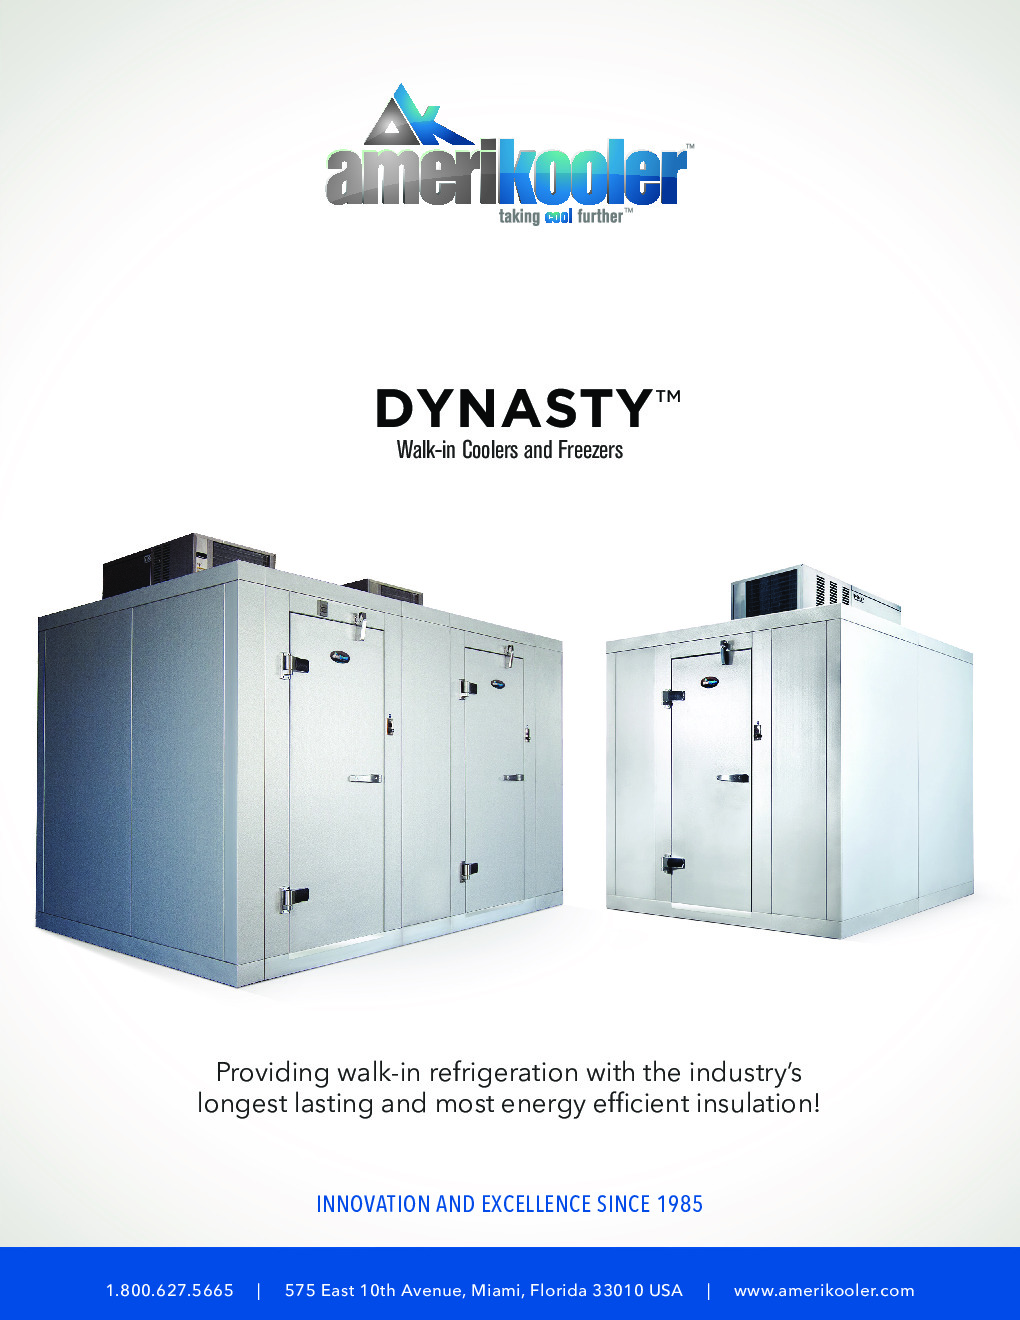 AmeriKooler DW081177F-5/6-RM 8' X 11' Walk-In Cooler, 6' L Cooler with Floor and 5' L Freezer, Remote